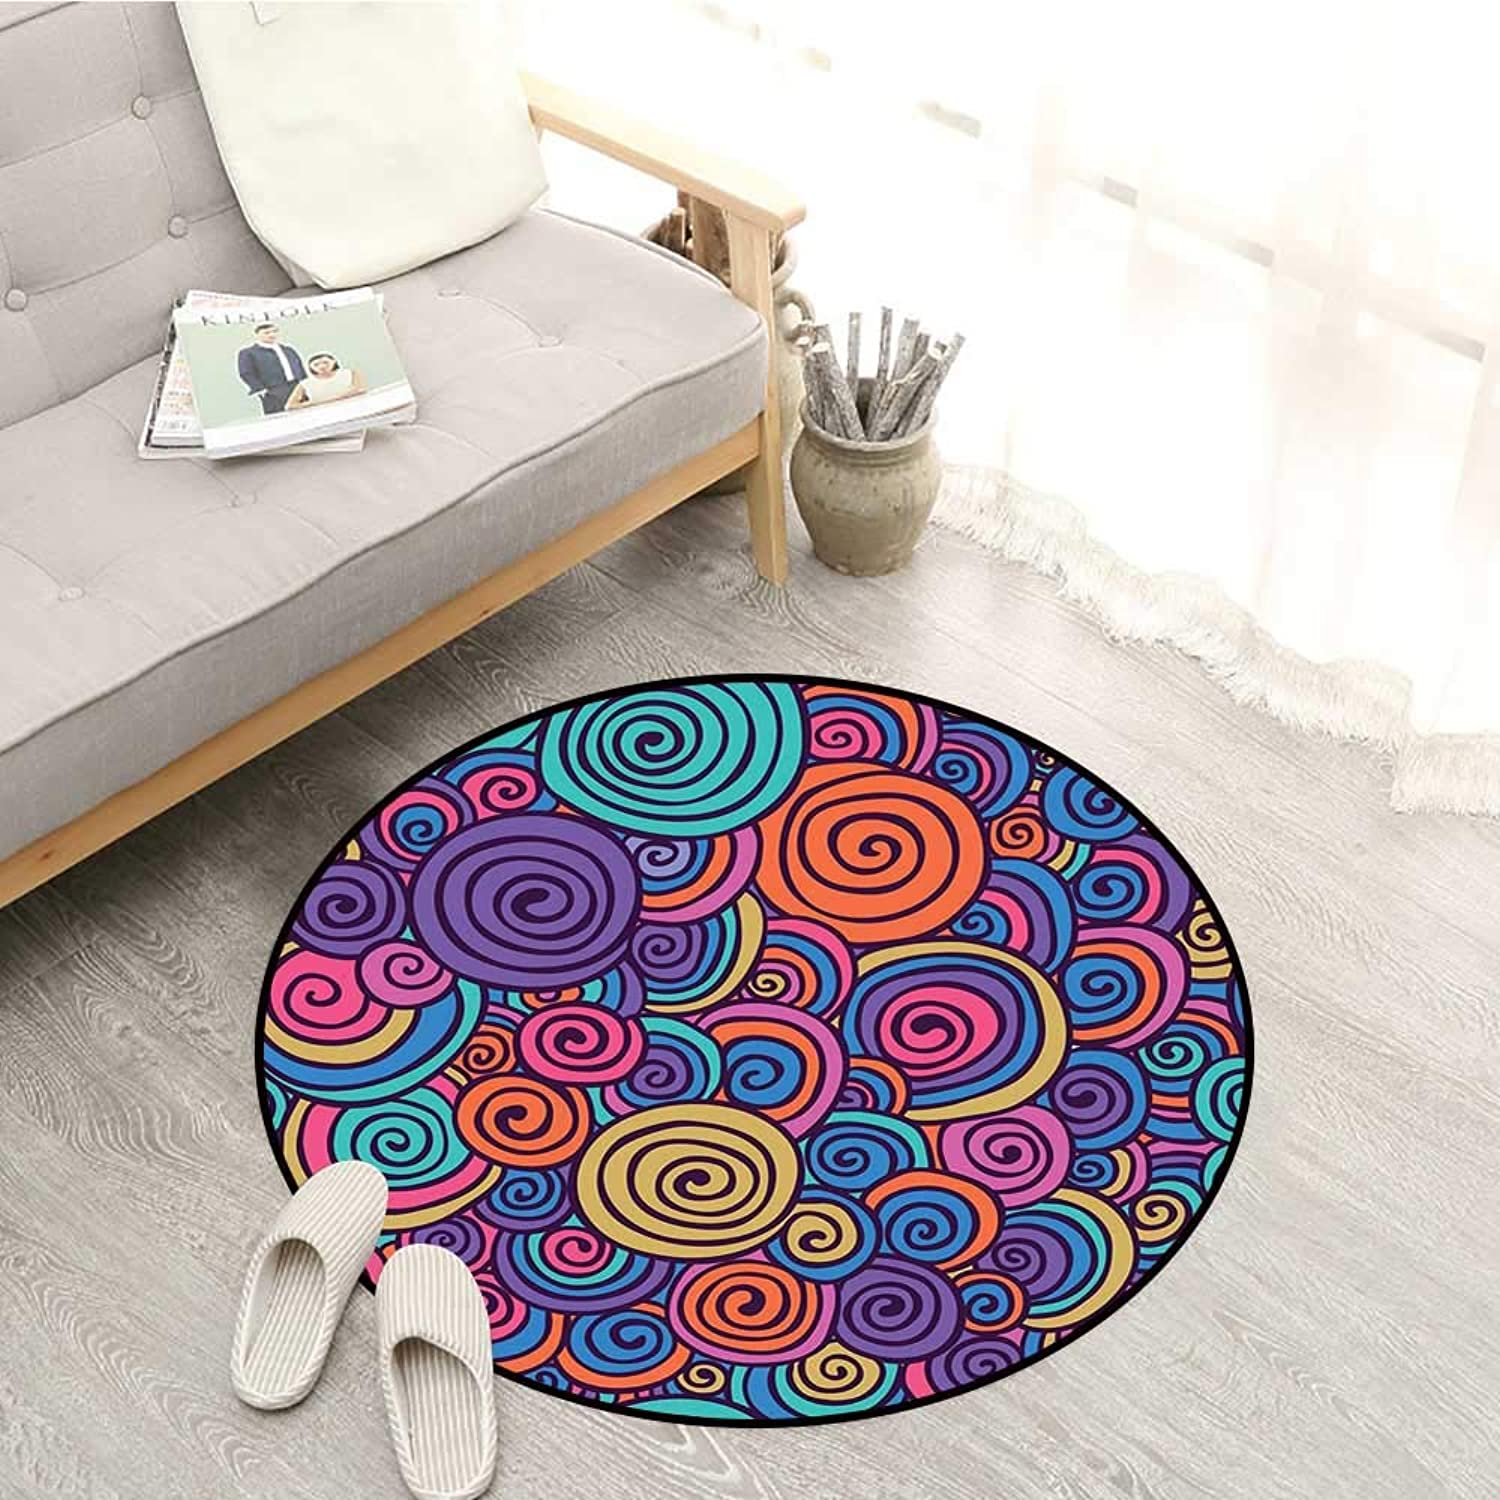 Abstract Carpets Hand Sketcked Circles in Retro Inspired Style Abstract Sixties Art Hippie Vibes Sofa Coffee Table Mat 4'11  Multicolor